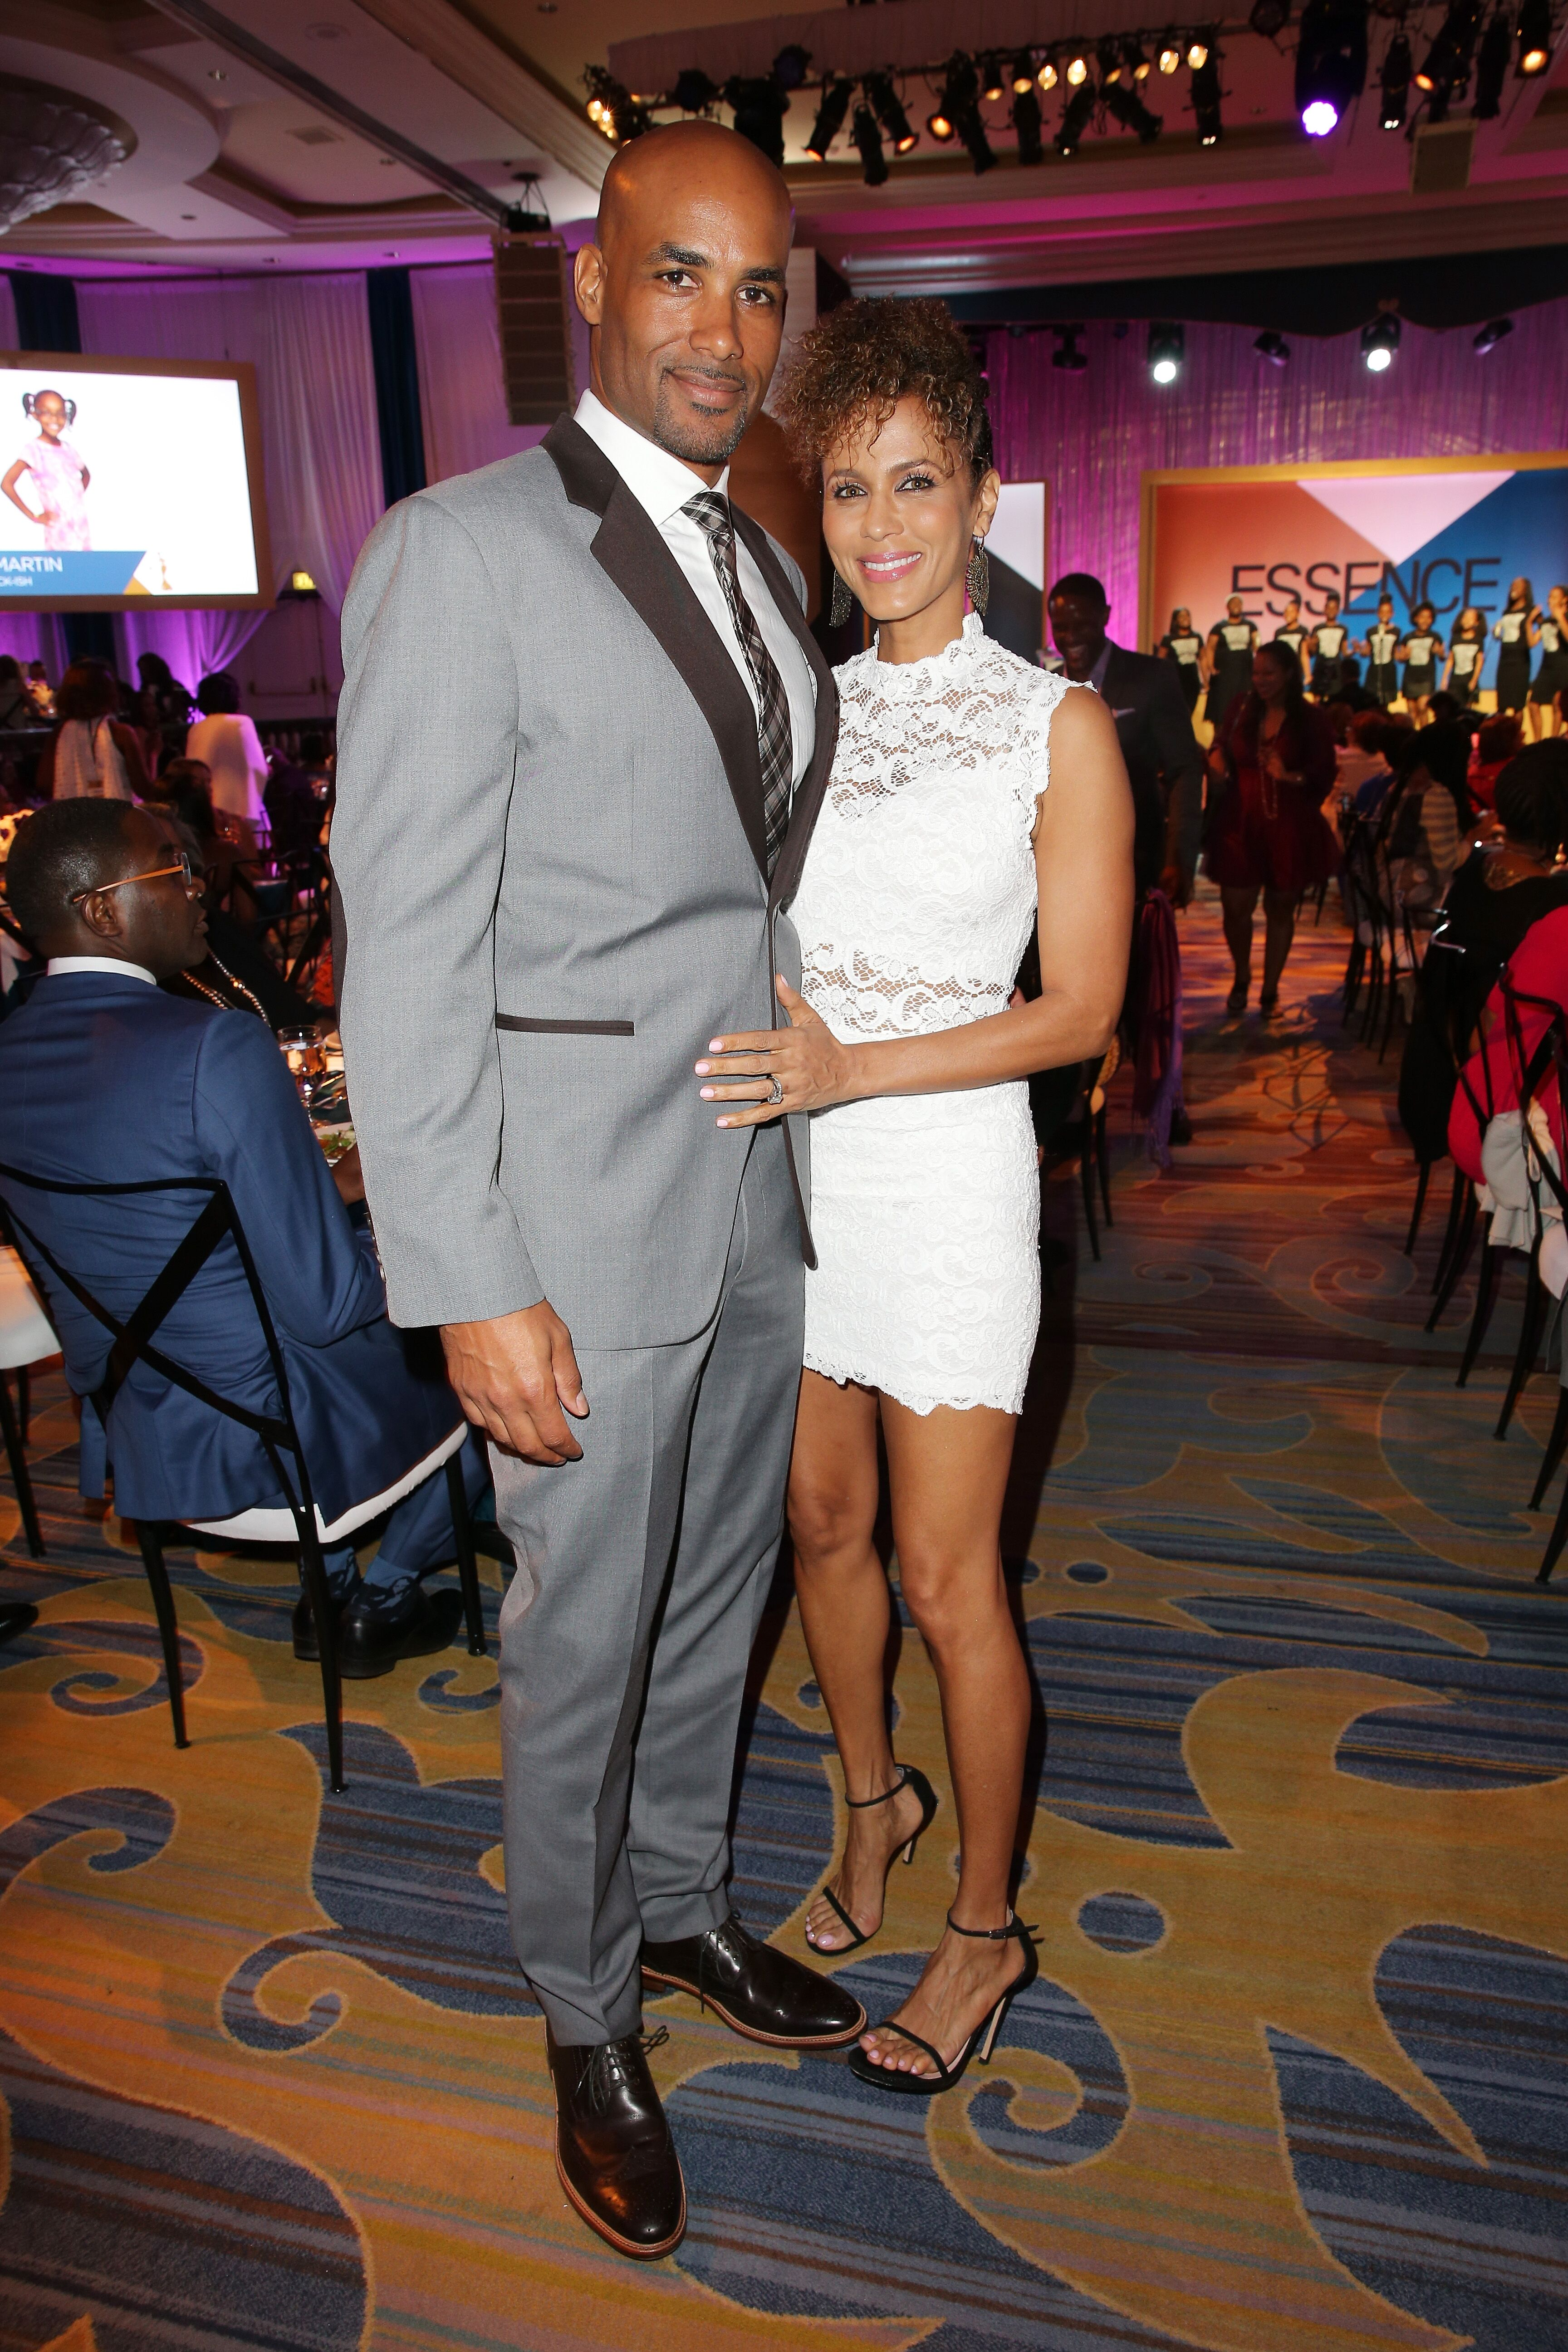 Boris Kodjoe and Nicole Ari Parker attend the 2016 ESSENCE Black Women In Hollywood awards luncheon on February 25, 2016 in Beverly Hills, California | Photo: Getty Images